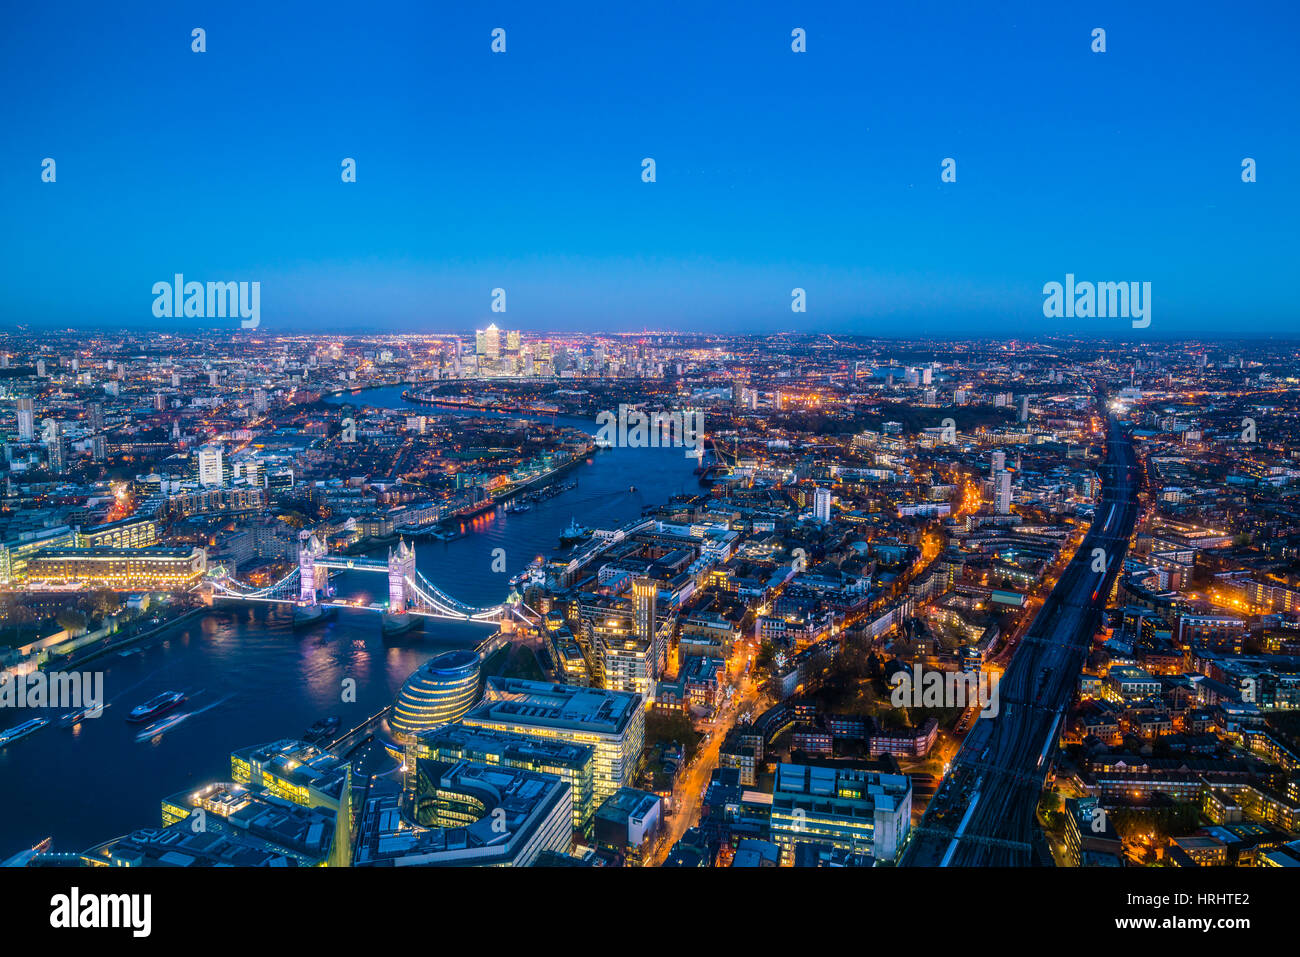 High view of London skyline at dusk along the River Thames from Tower Bridge to Canary Wharf, London, England, United - Stock Image